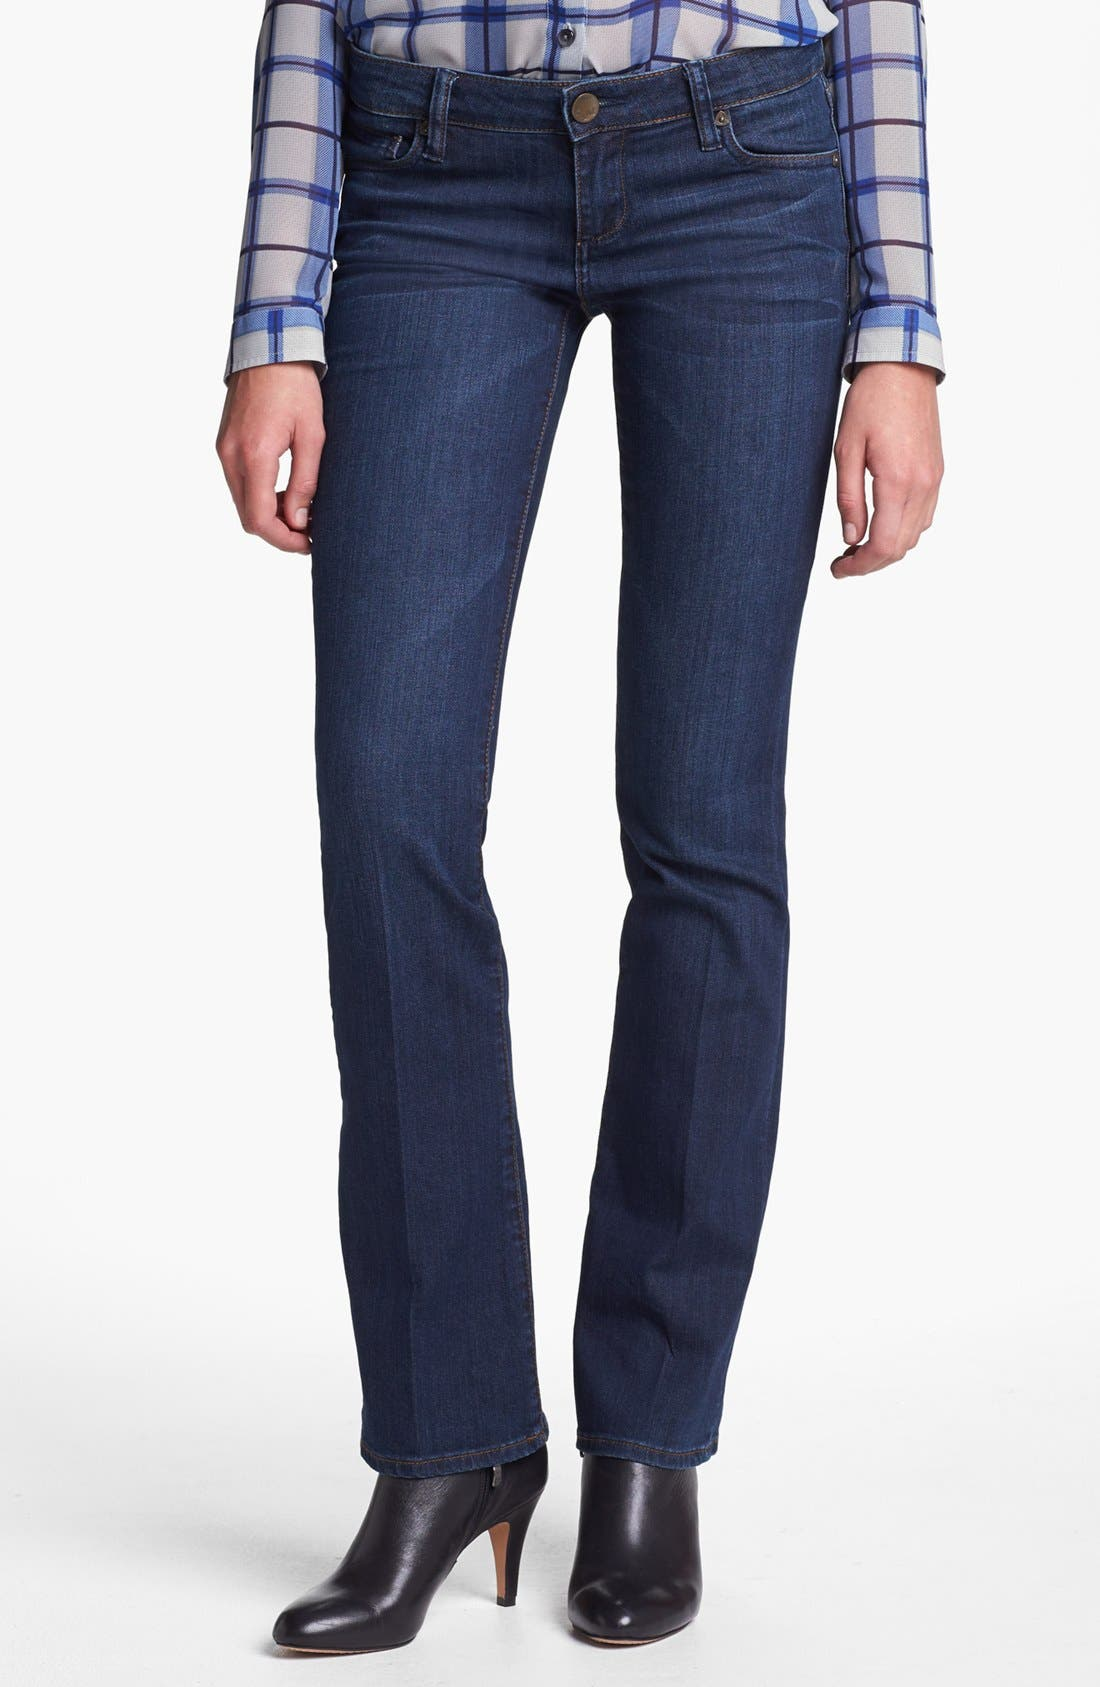 Main Image - KUT from the Kloth 'Farrah' Mini Bootcut Jeans (Whim) (Regular & Petite)